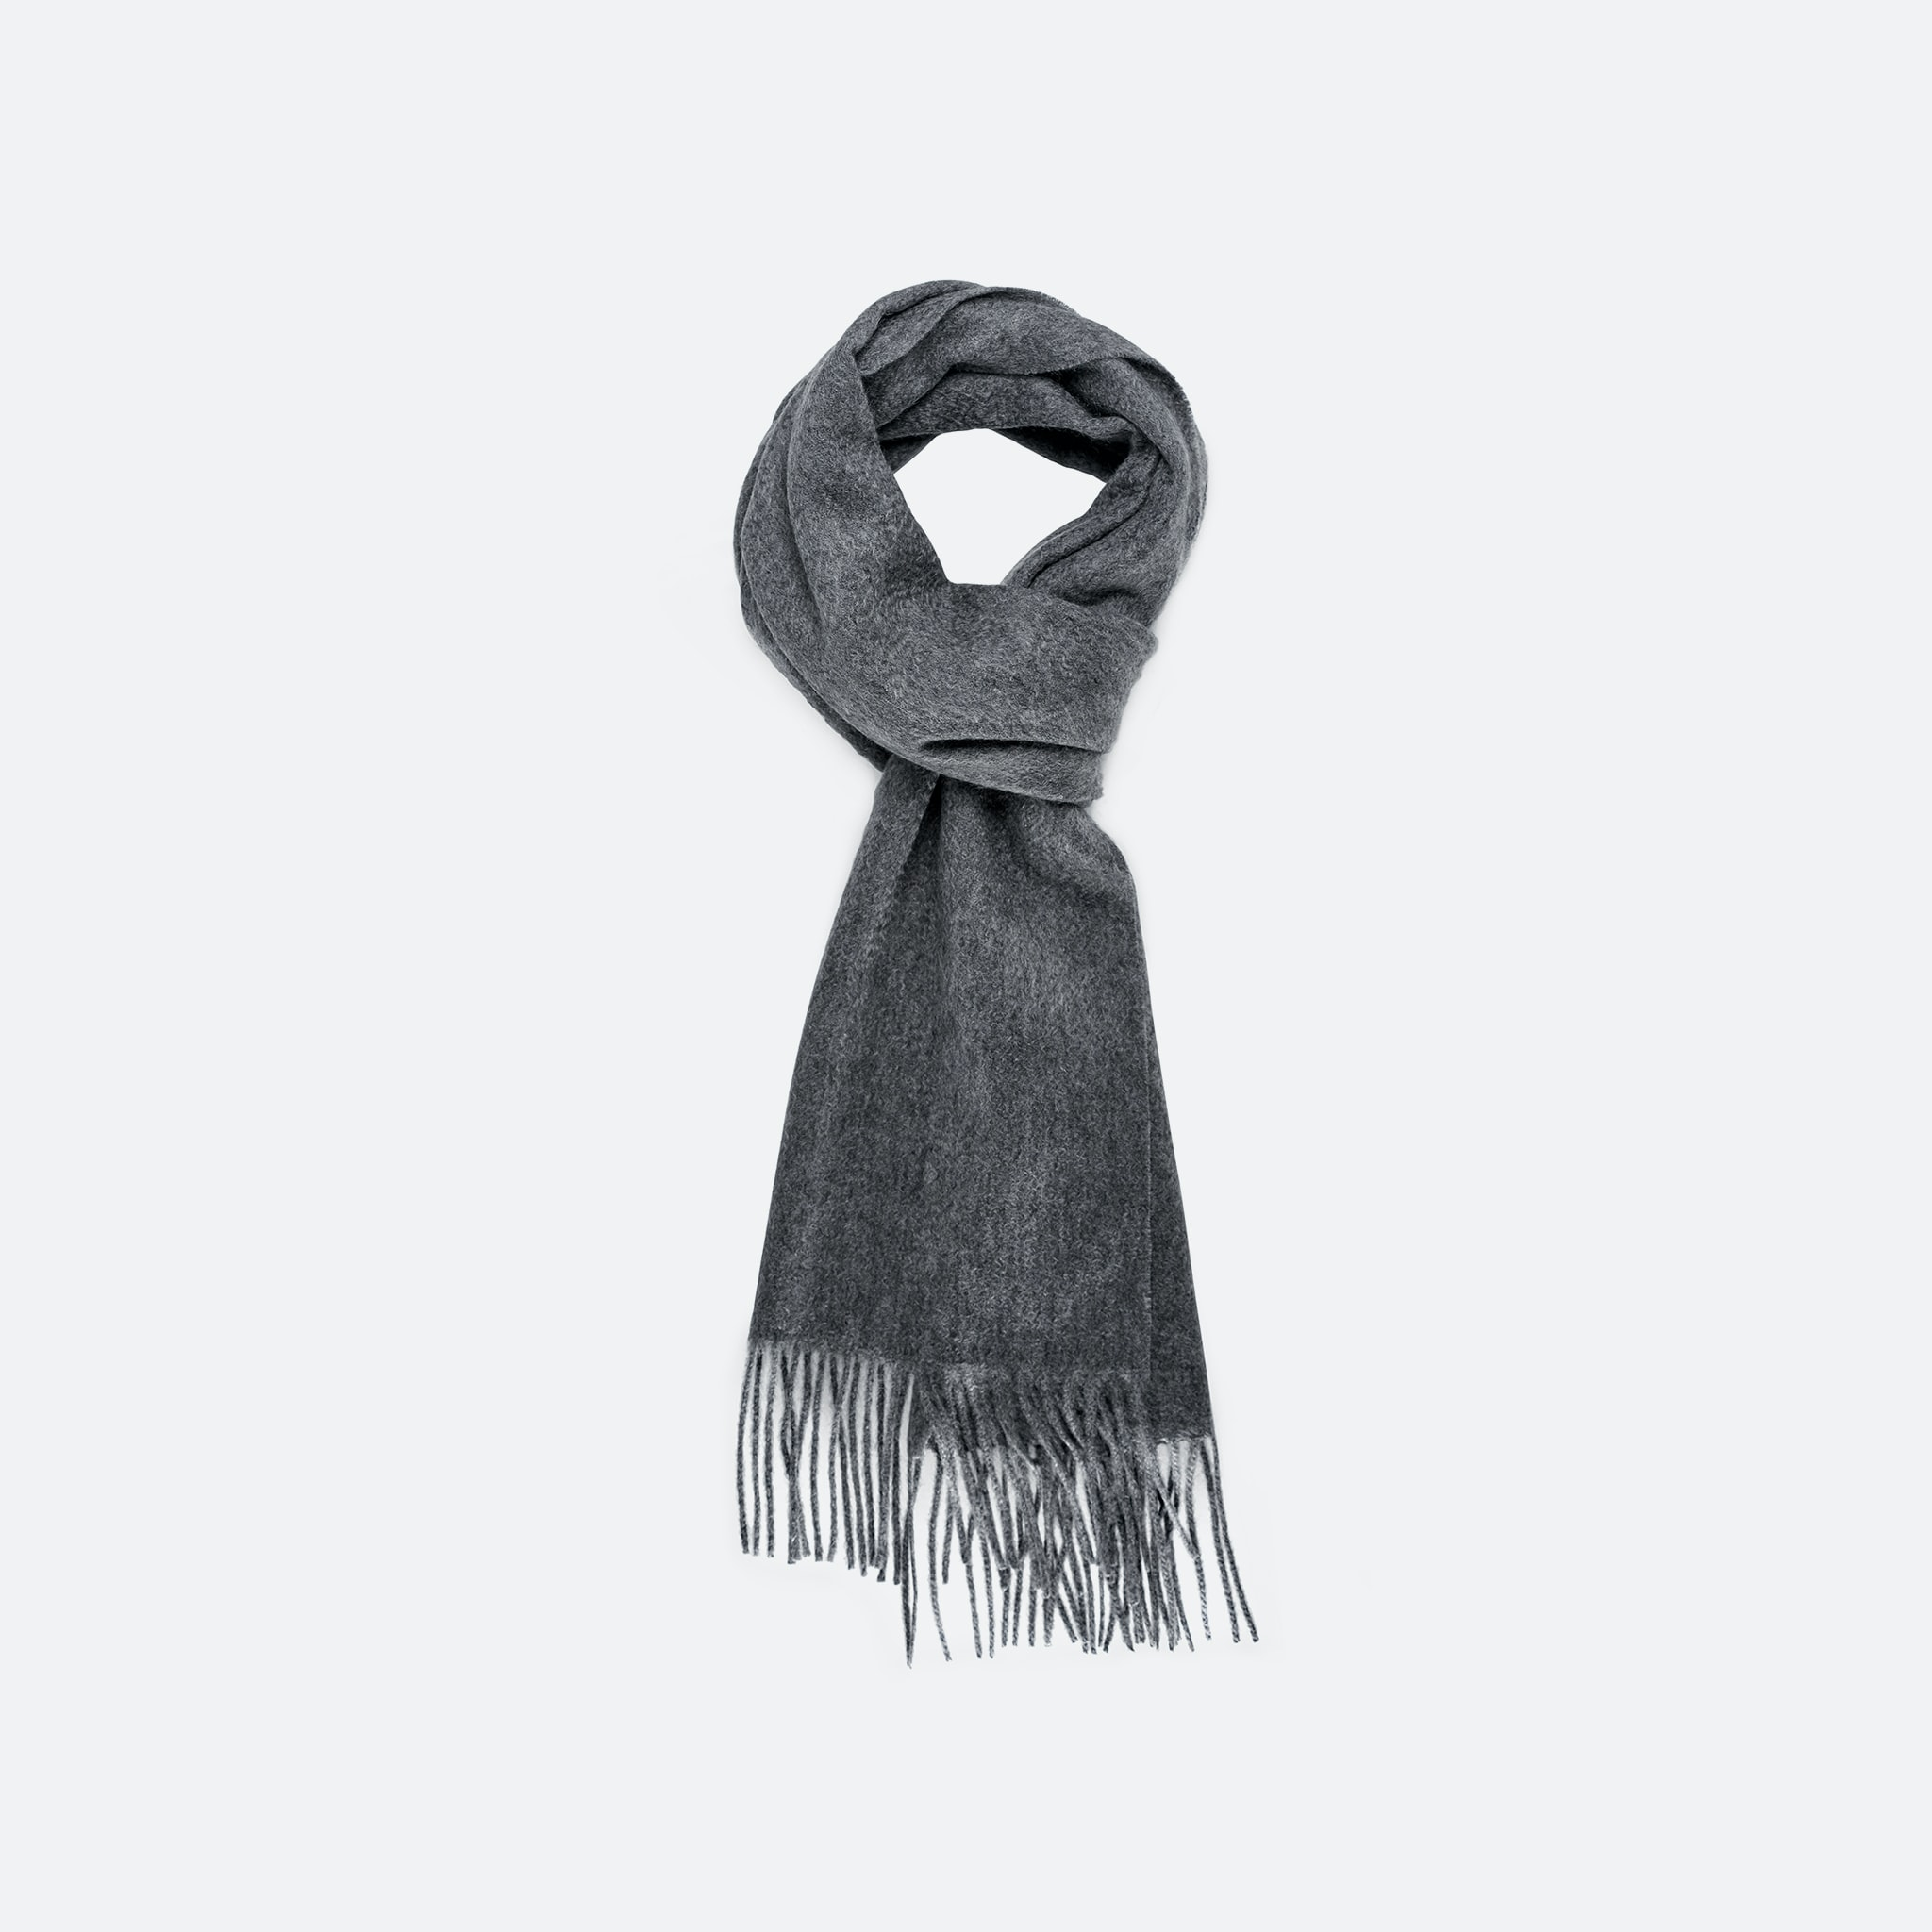 The HODINKEE Shop also stocks other variations of the same 100% cashmere scarf. In The Shop: Introducing The HODINKEE Holiday Gift Collection In The Shop: Introducing The HODINKEE Holiday Gift Collection SCARF G OS 1